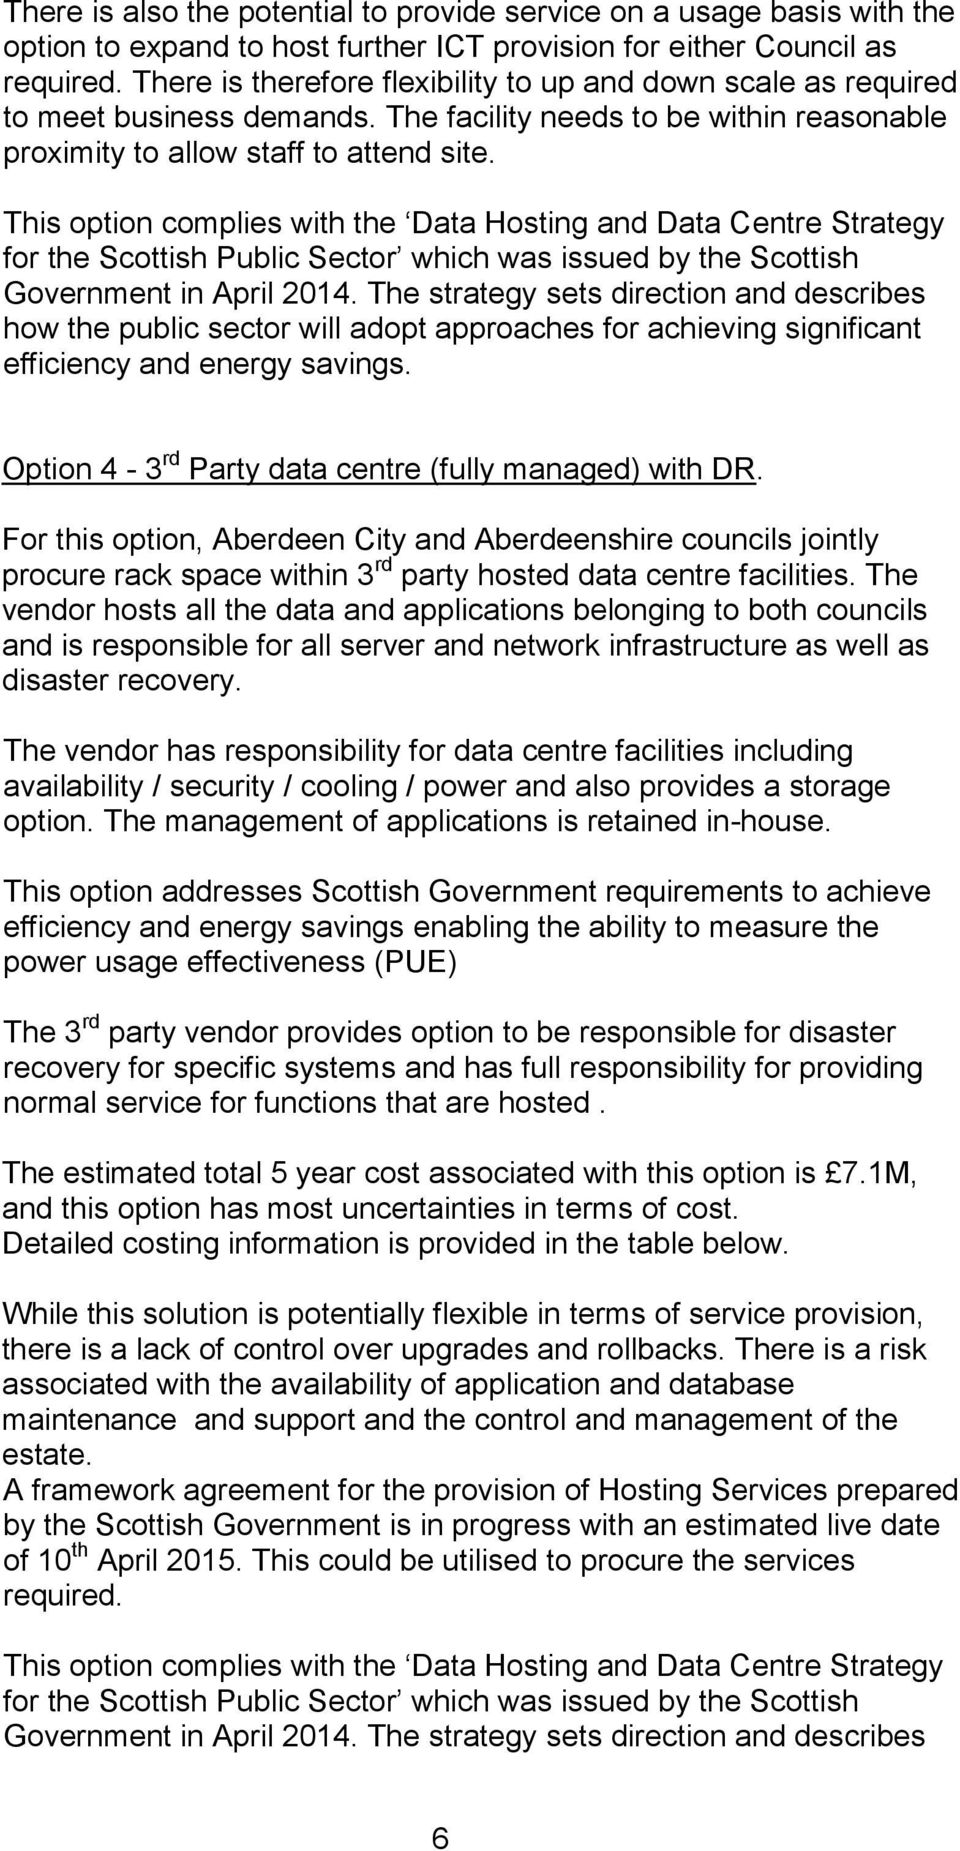 This option complies with the Data Hosting and Data Centre Strategy for the Scottish Public Sector which was issued by the Scottish Government in April 2014.